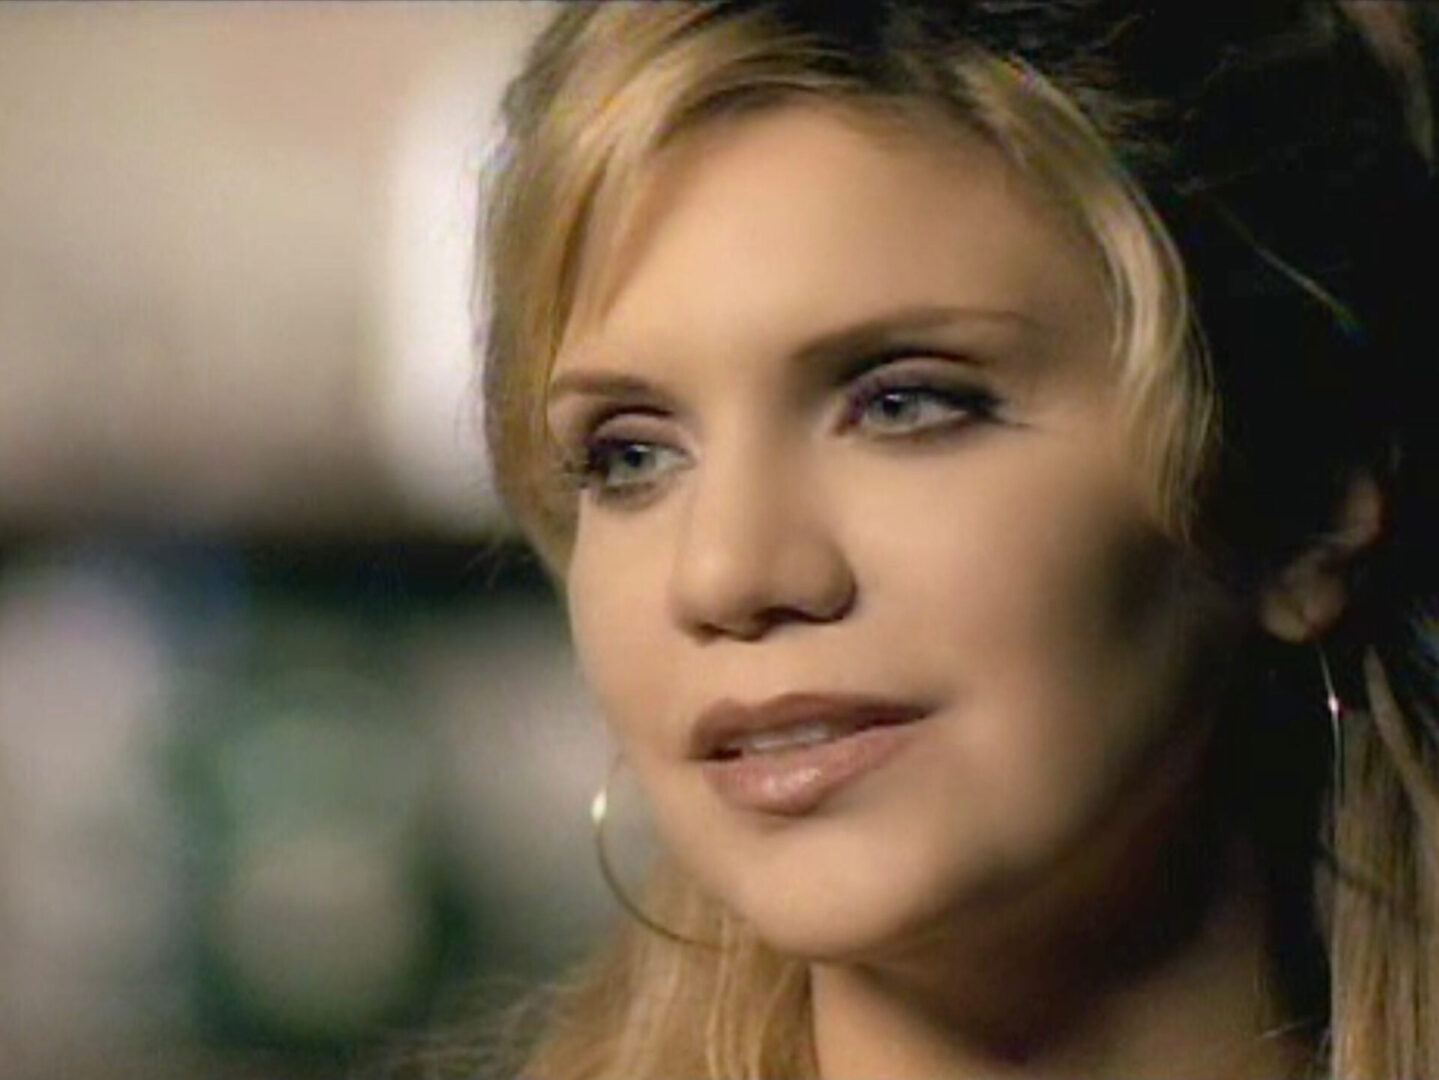 Alison Krauss directed by Rocky Schenck for Restless music video filmed in New Orleans with her band Union Station